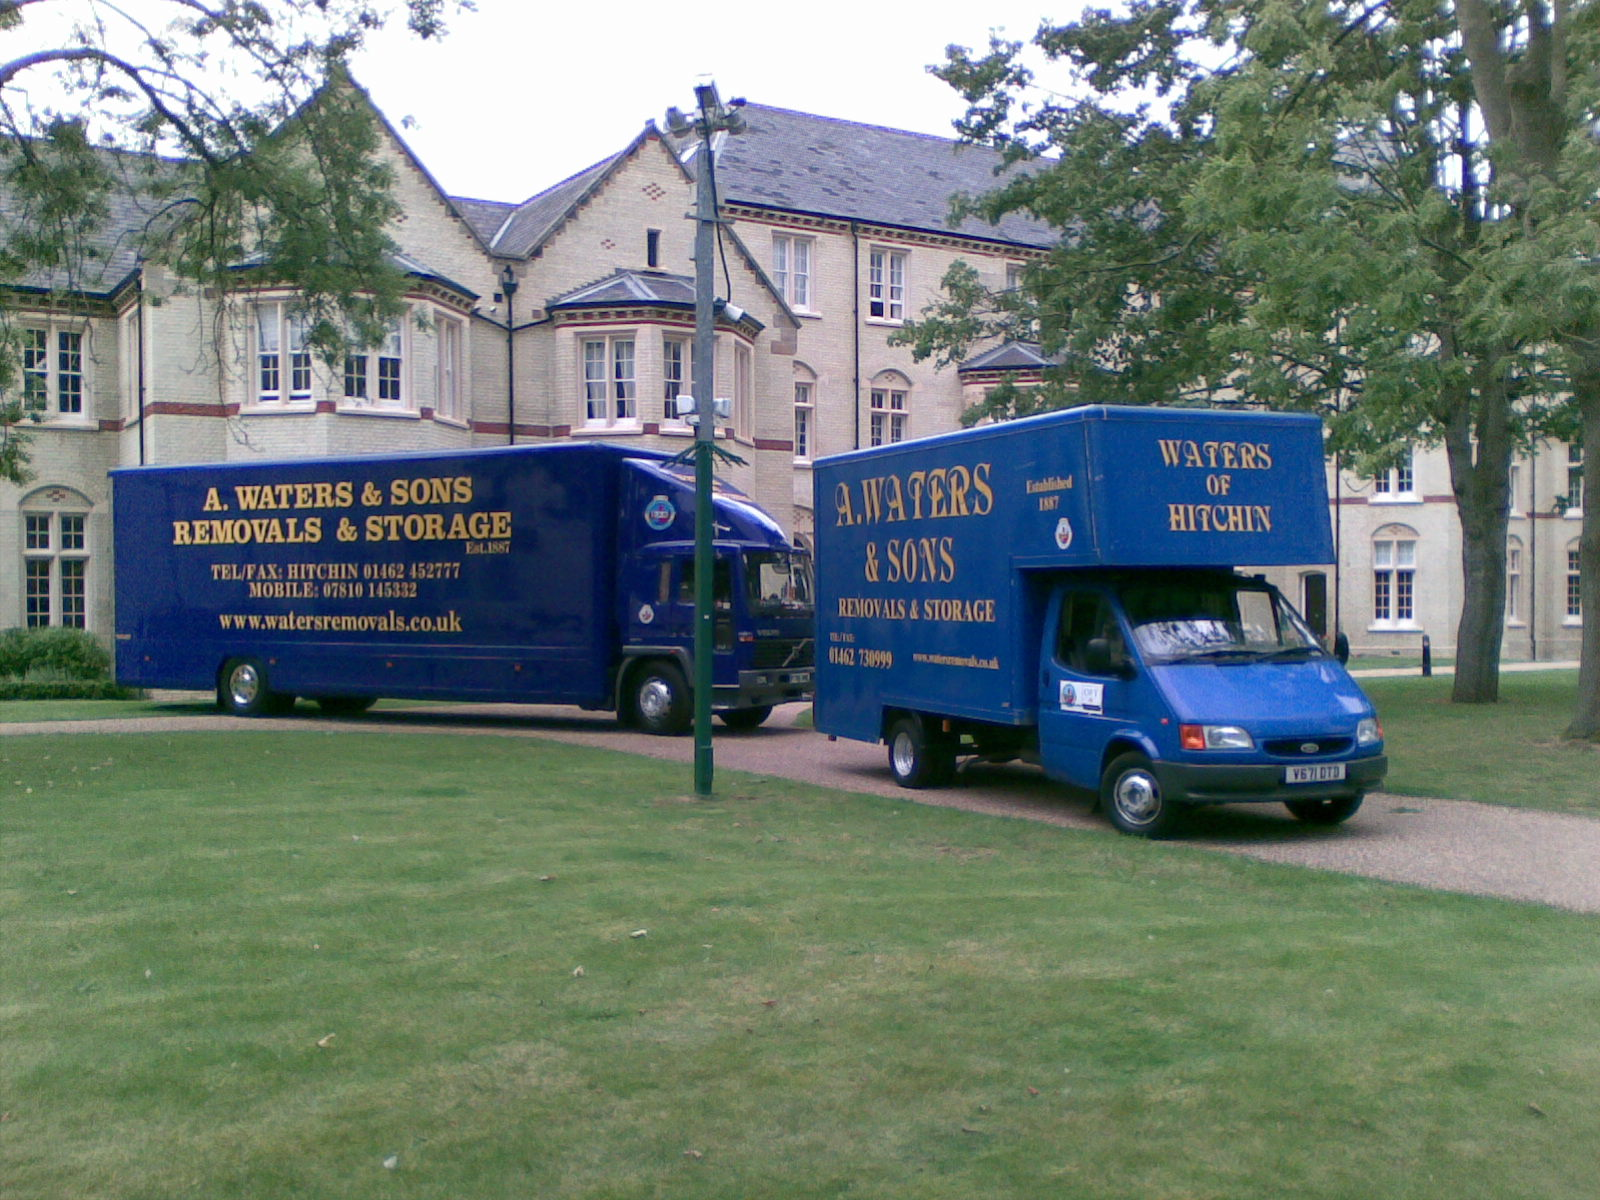 a waters & sons removals & storage logo